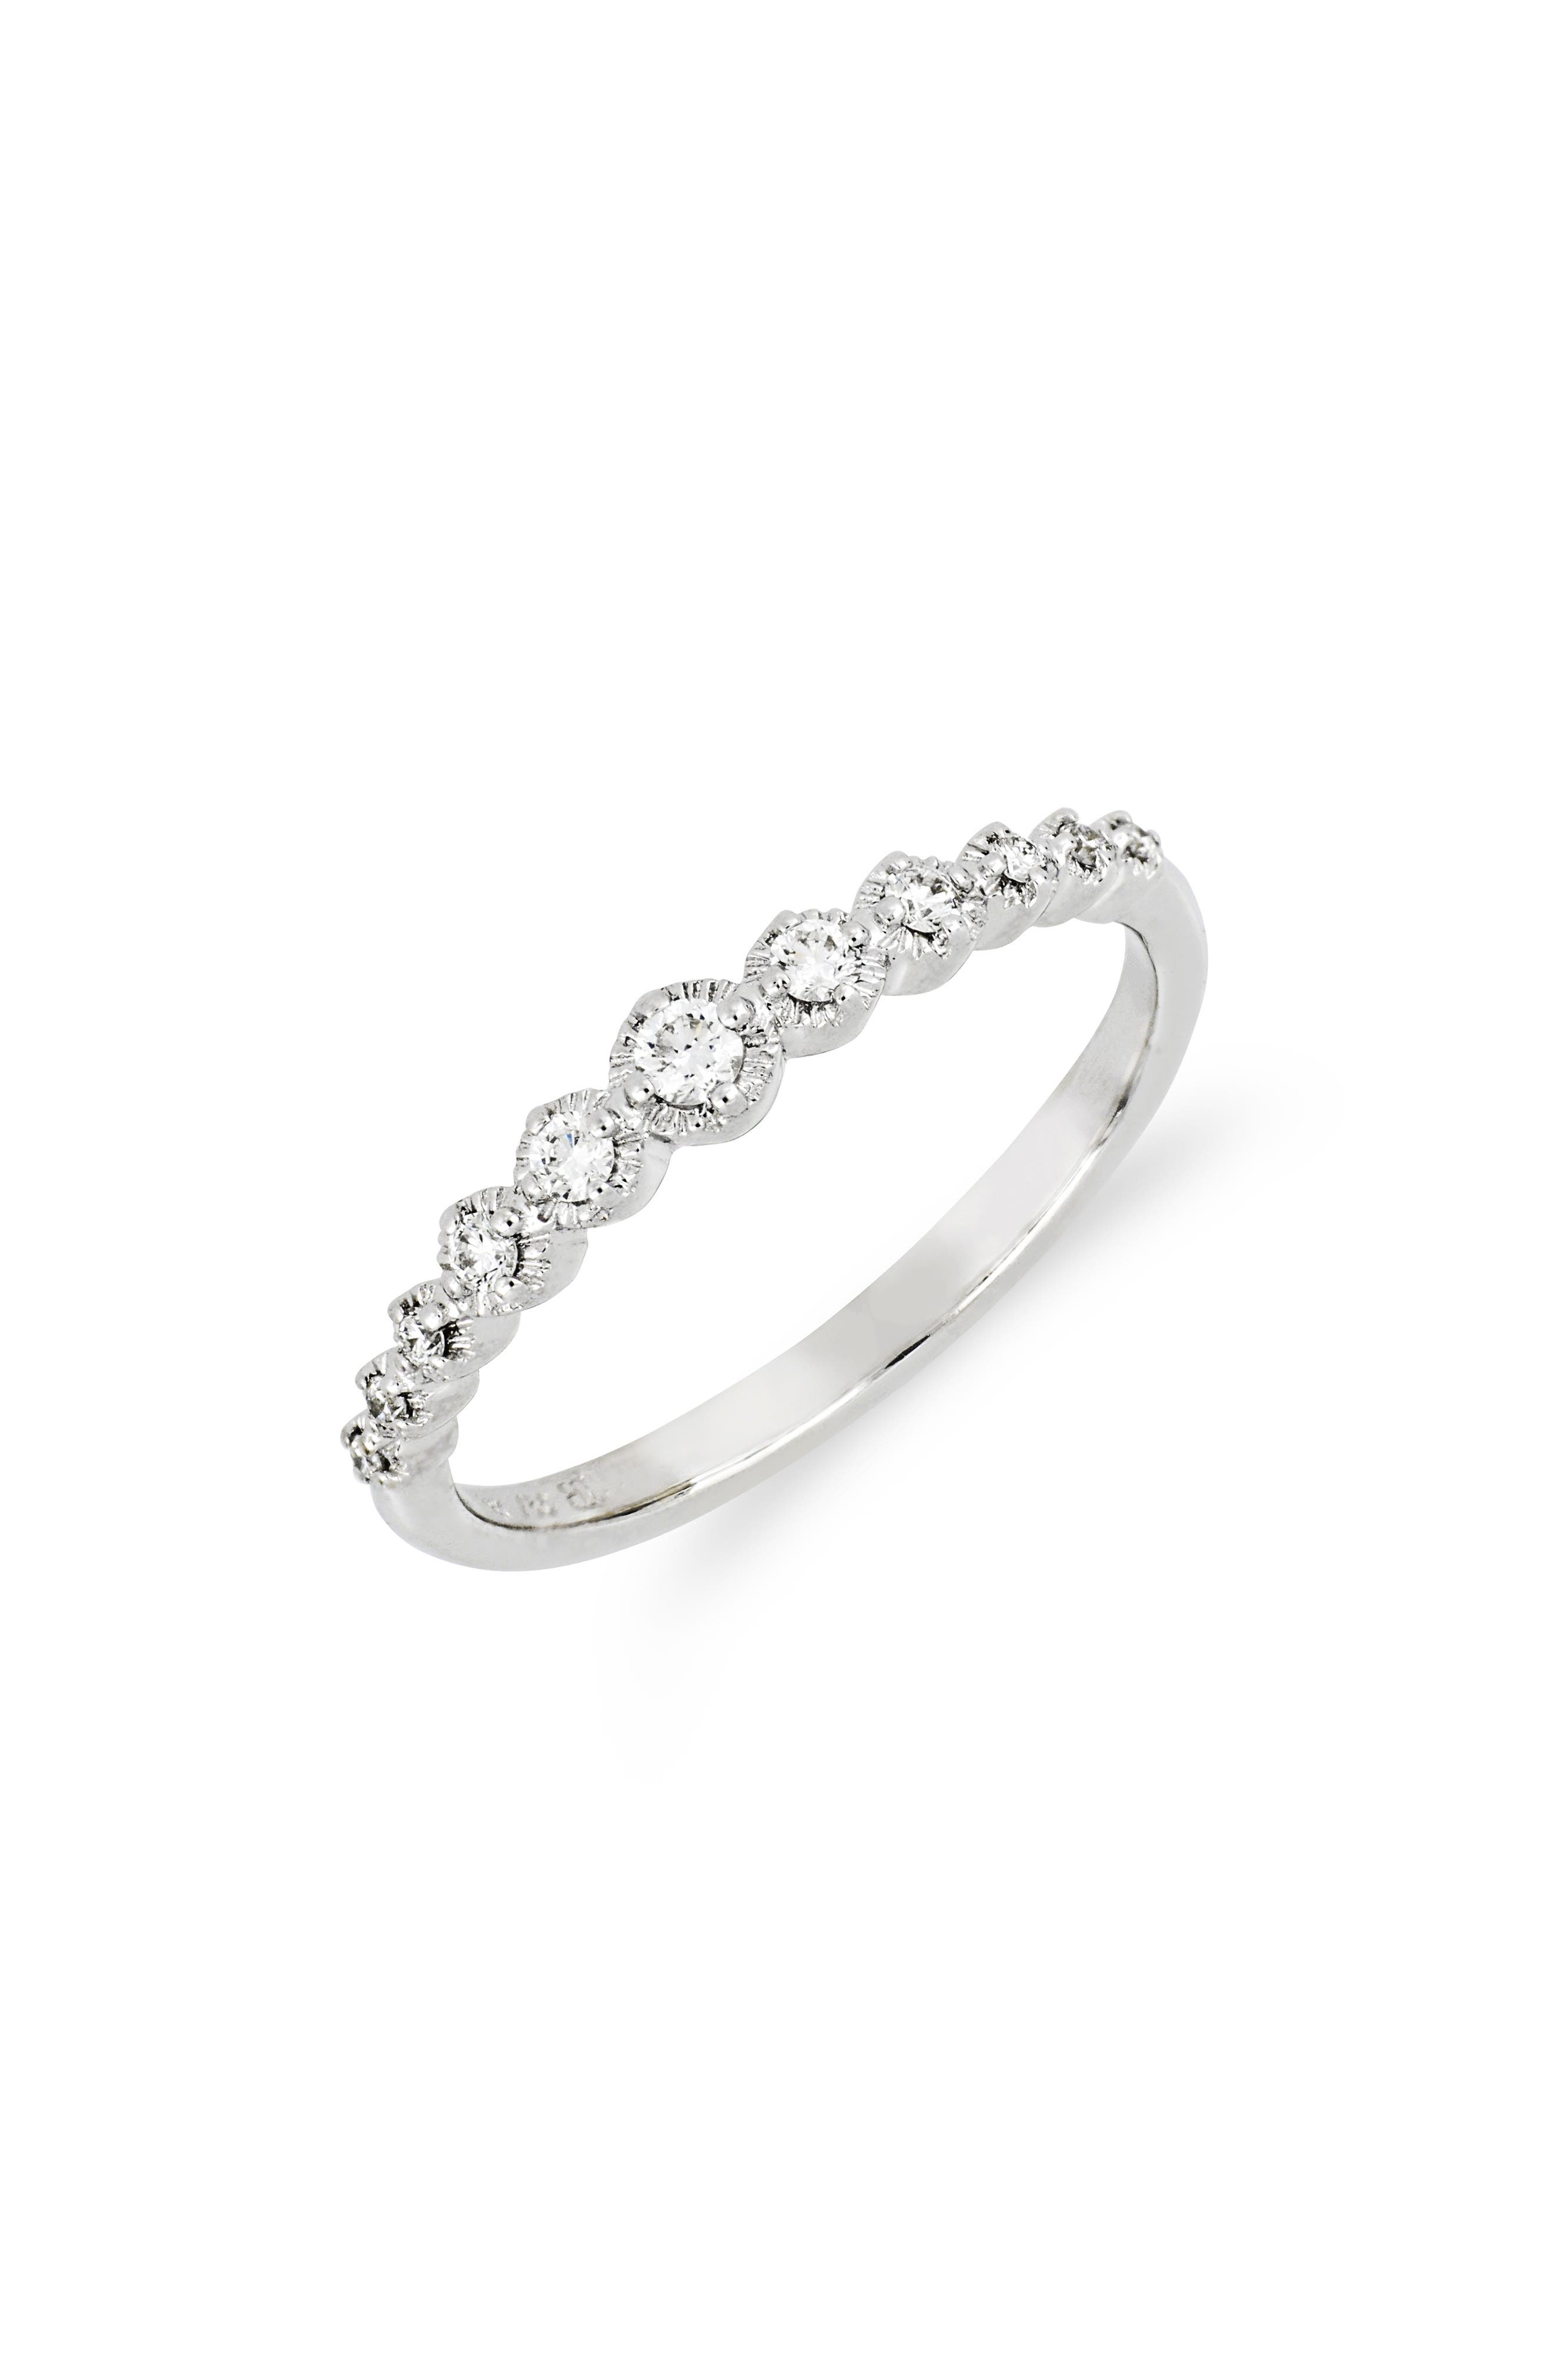 Mila Large Hammered Diamond Stack Ring,                             Main thumbnail 1, color,                             WHITE GOLD